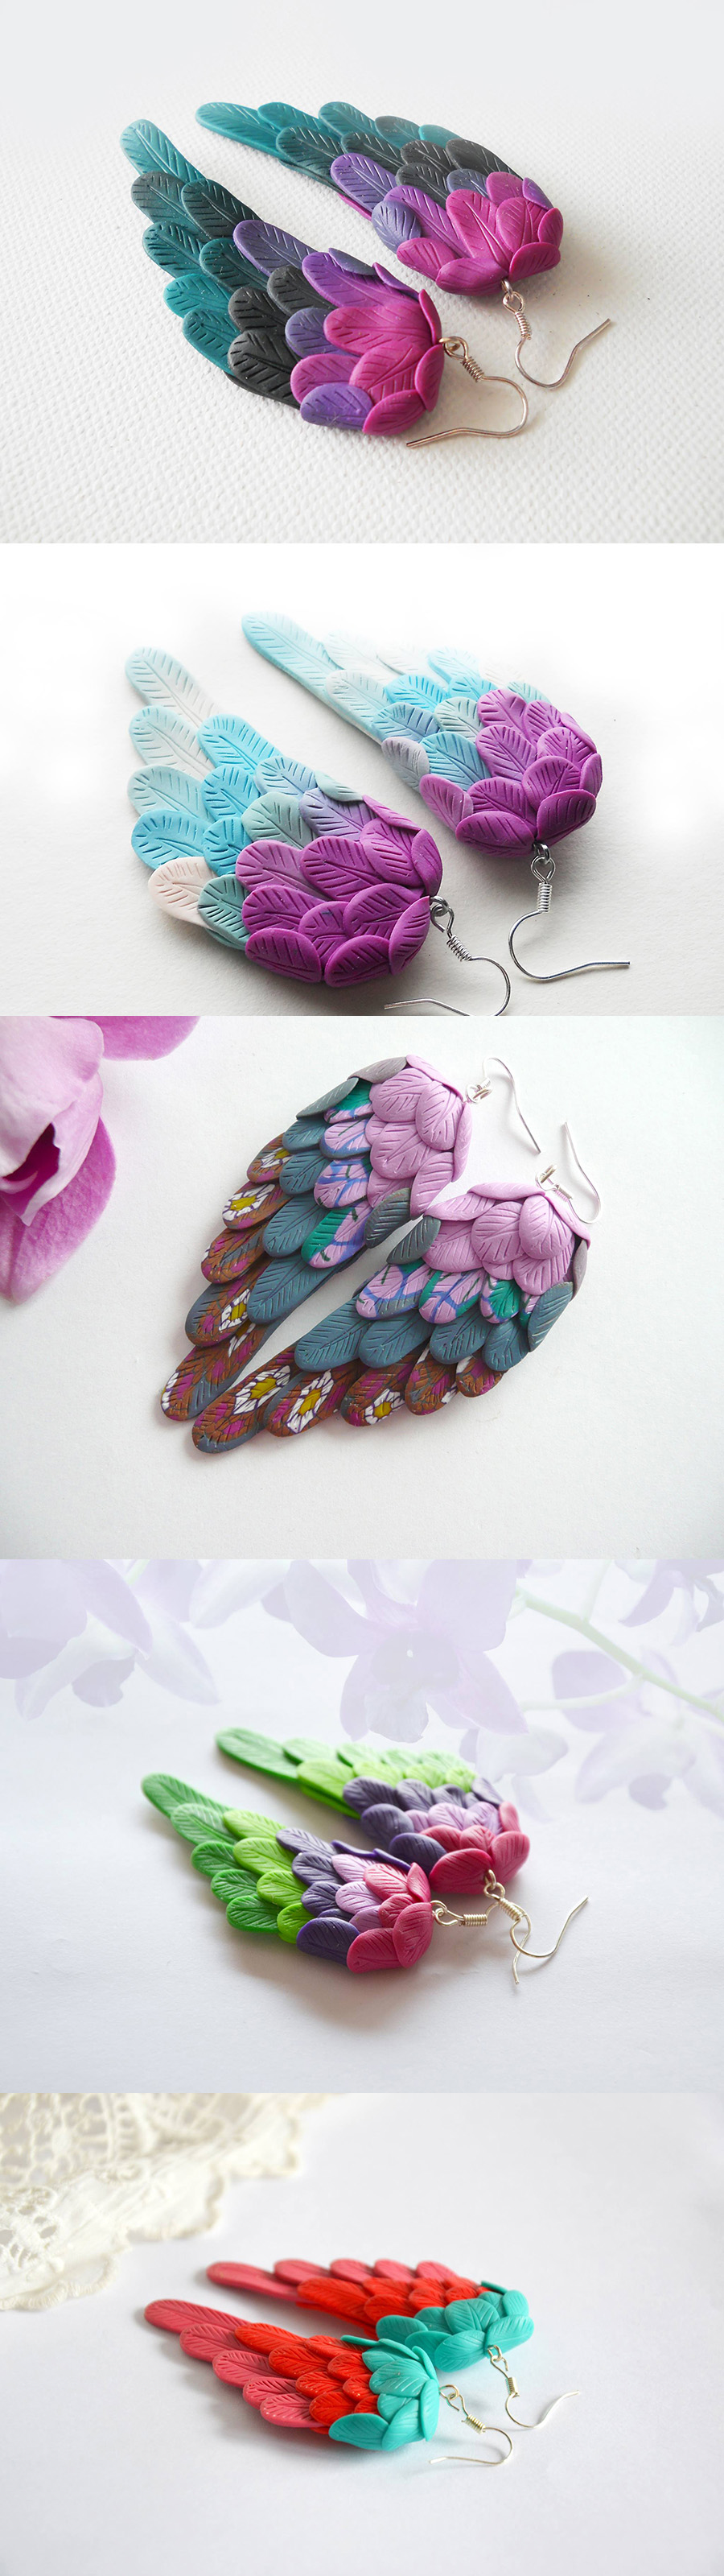 polymer clay angel wings collection